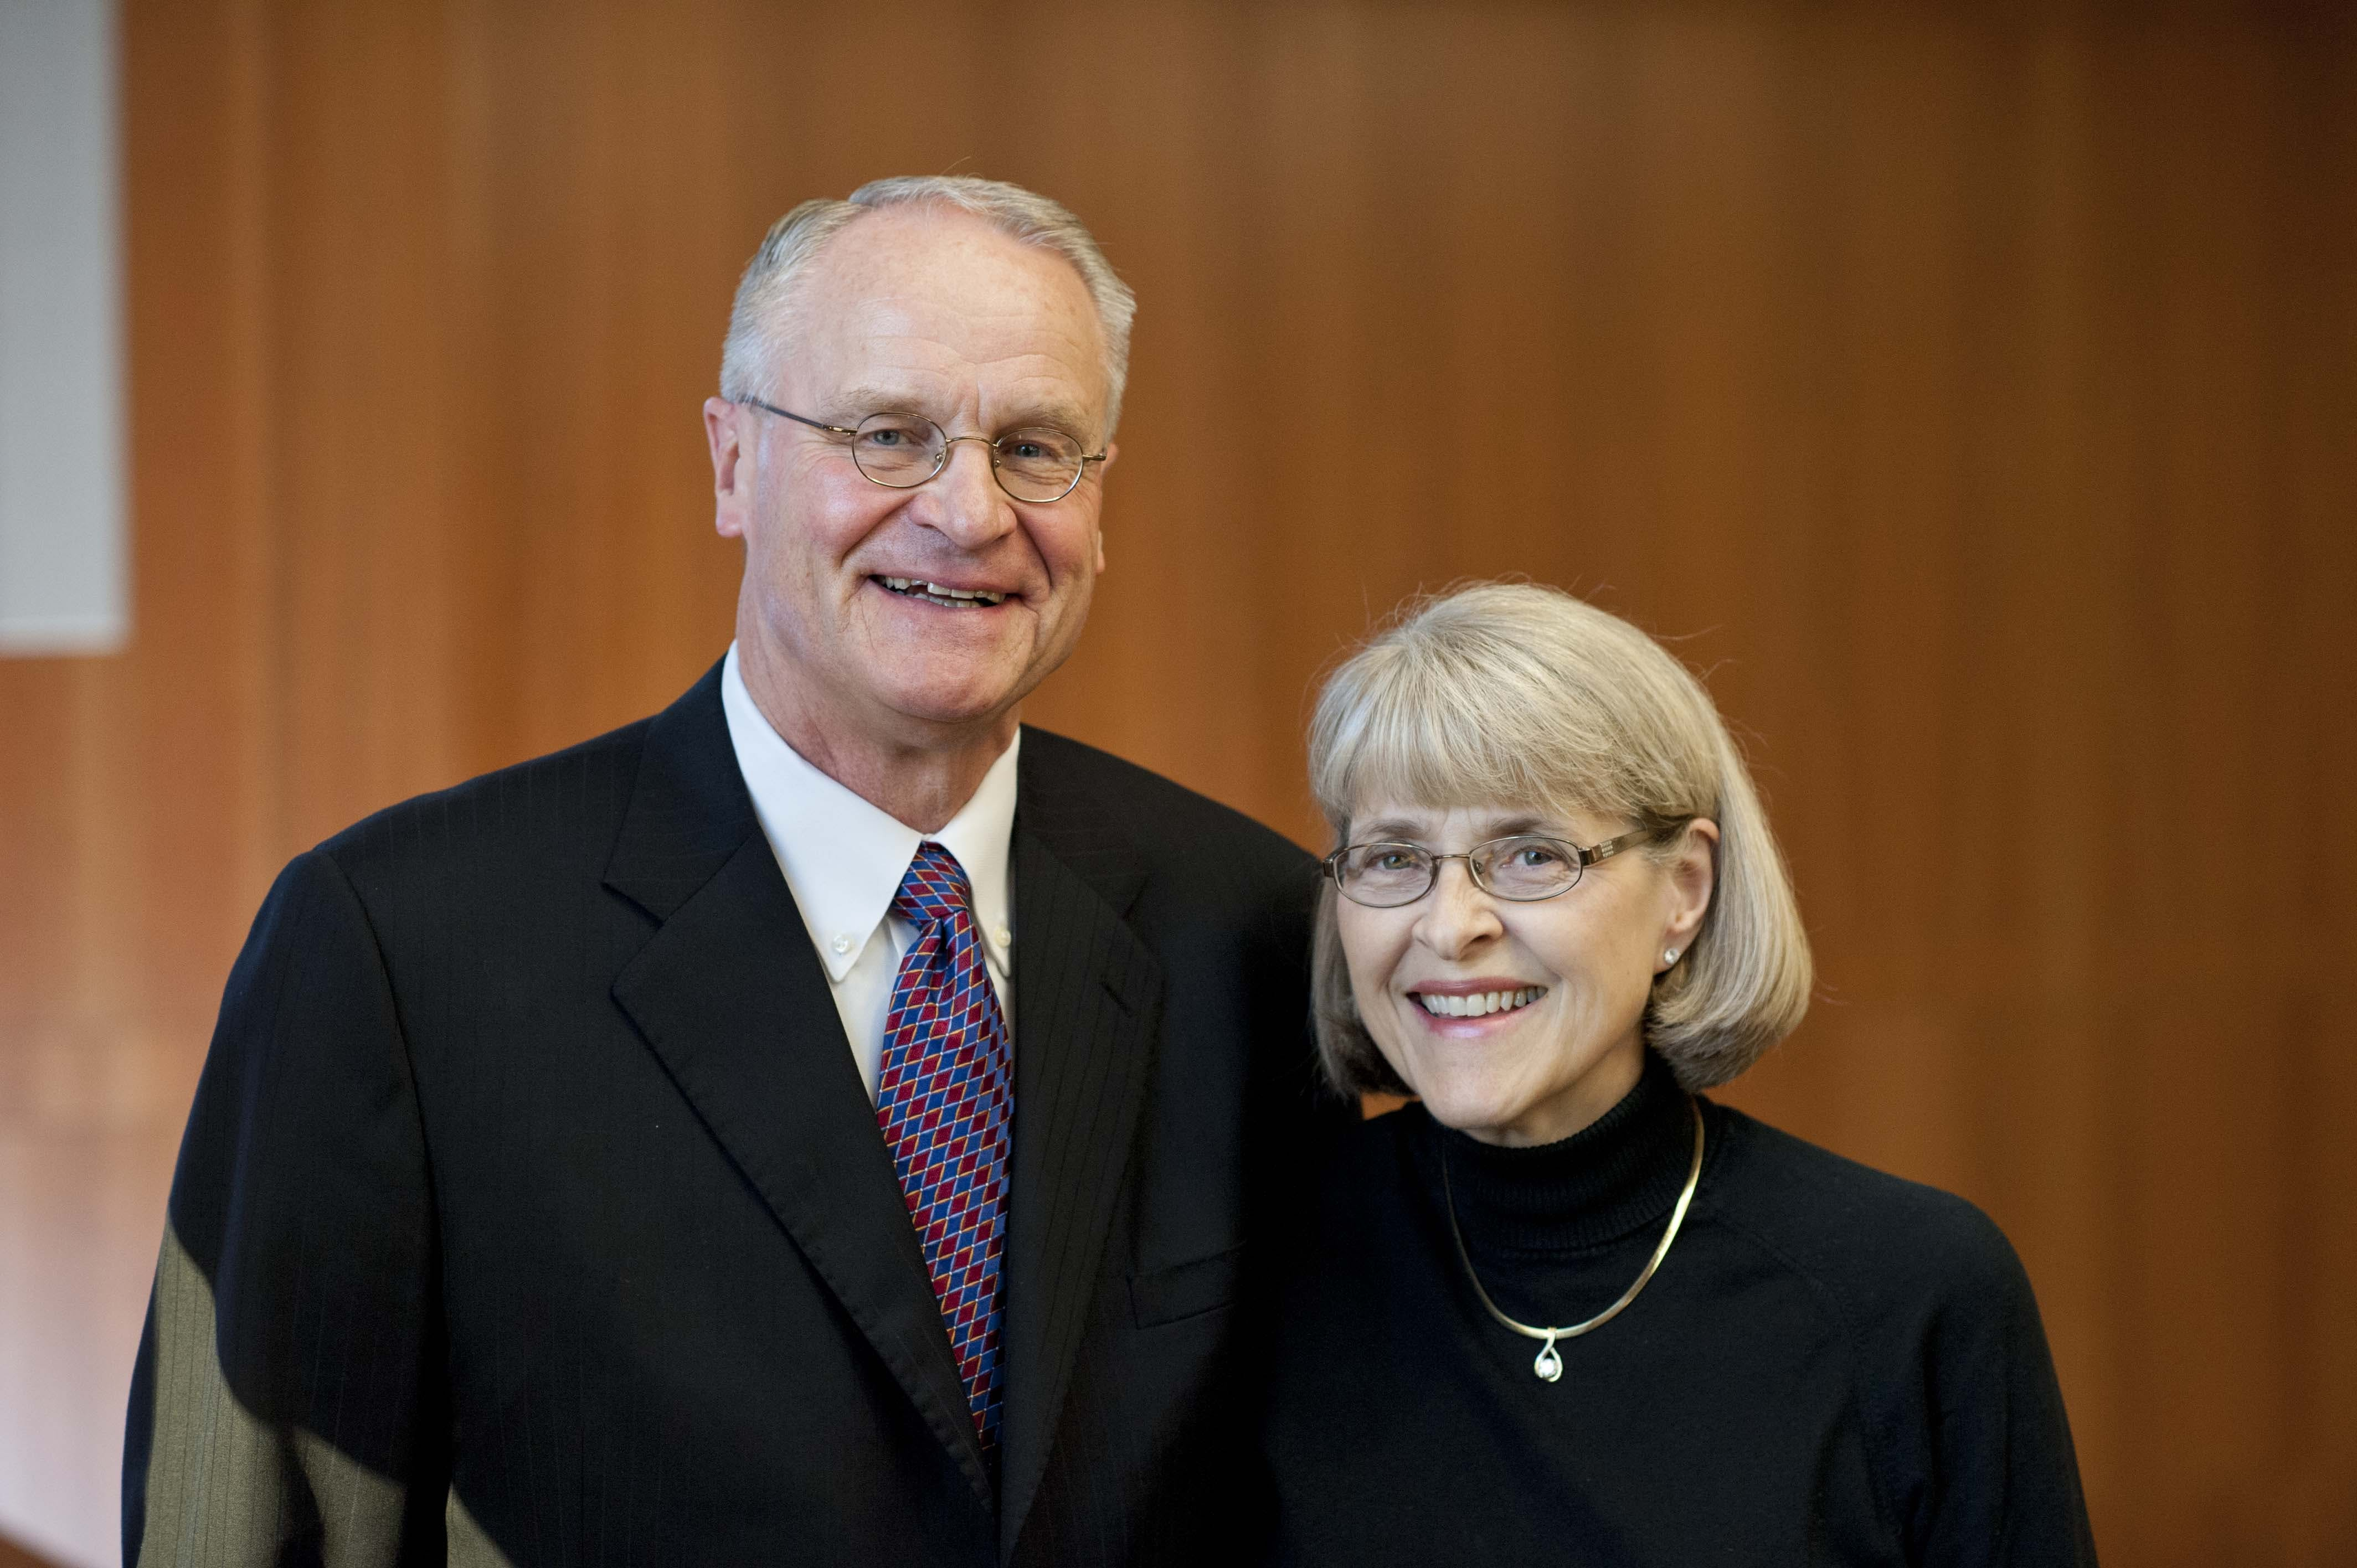 Through their deferred charitable gift annuity, Pam '72 and Paul Olson receive fixed annual payments in retirement while contributing to the growth of Bethel's endowment.